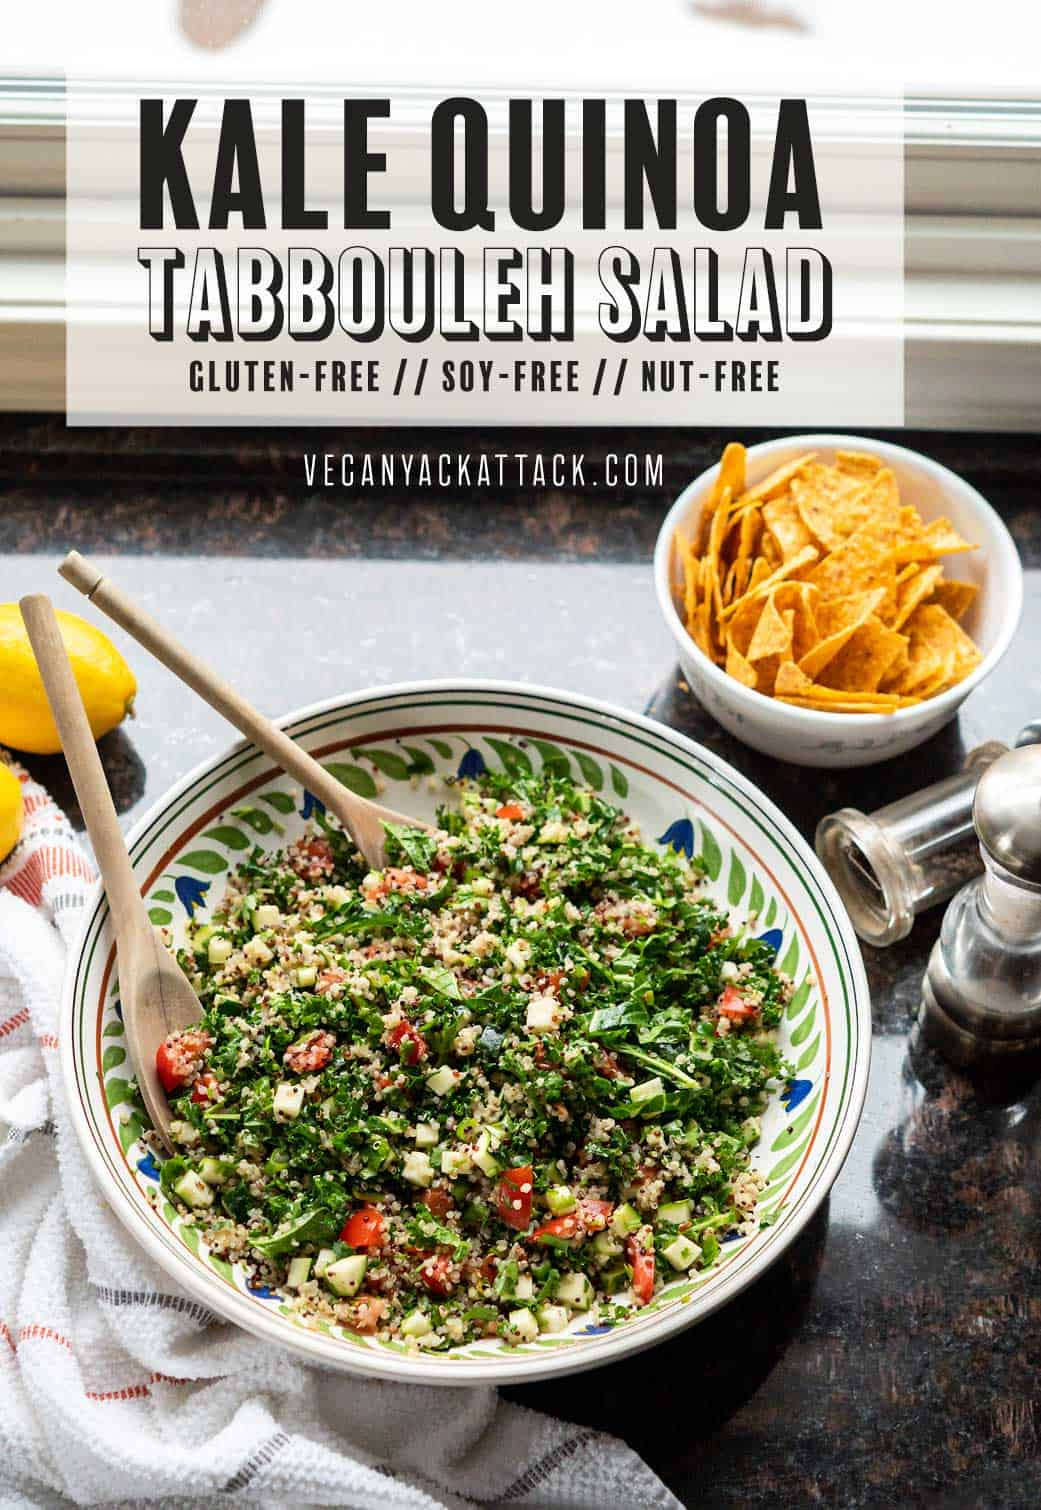 "Image of salad in a large ceramic bowl, on granite countertop, with text reading ""kale quinoa tabbouleh salad"""